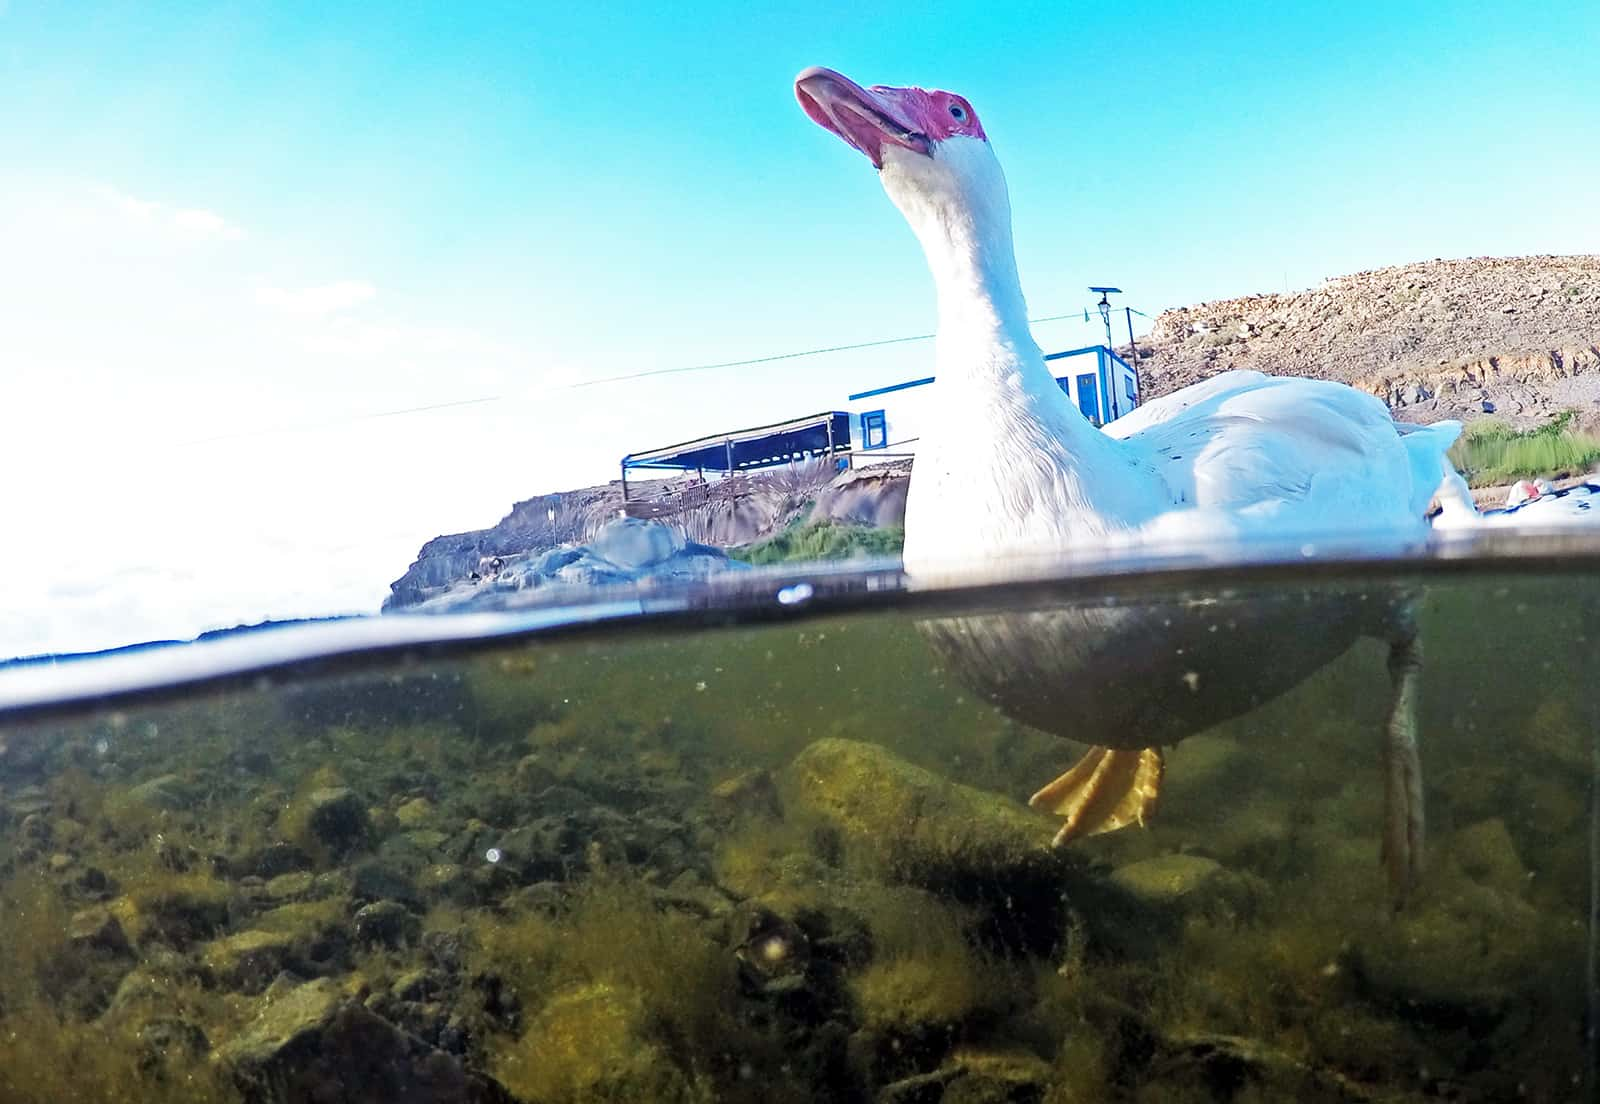 Oh, this duck is actually from Los Molinos.